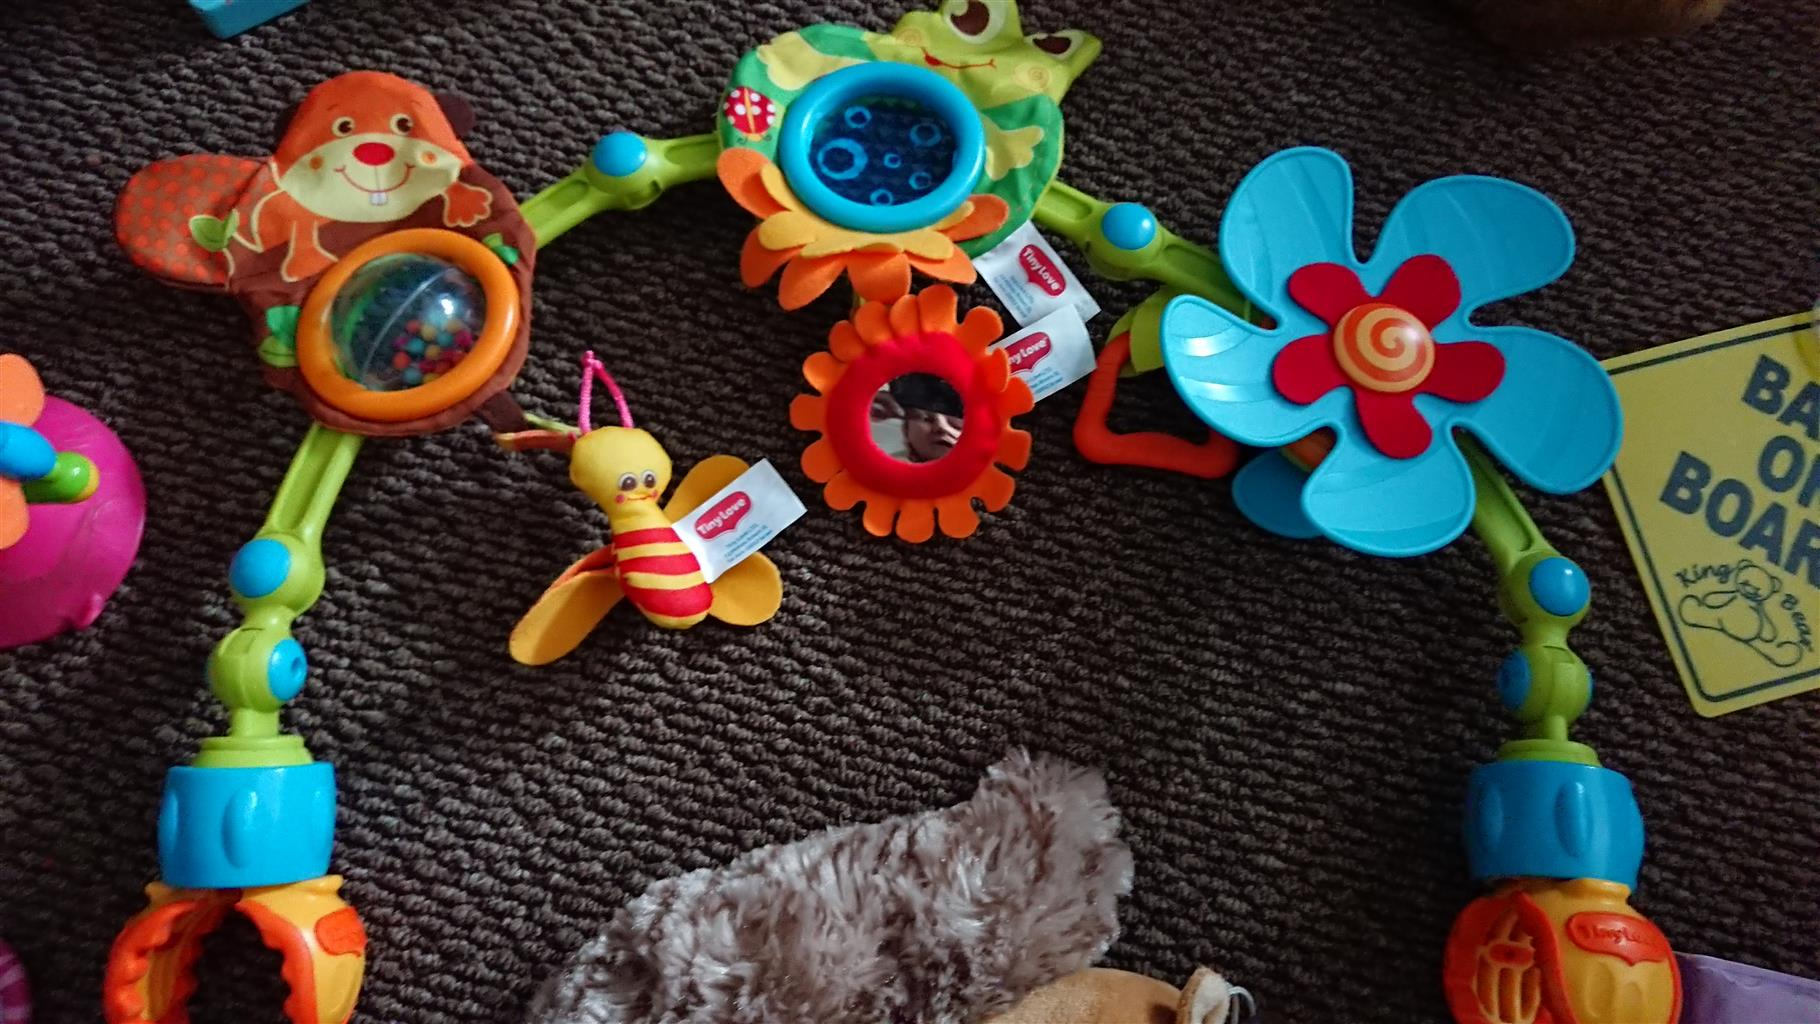 ALOT OF BABY GIRL EDUCATIONAL TOYS